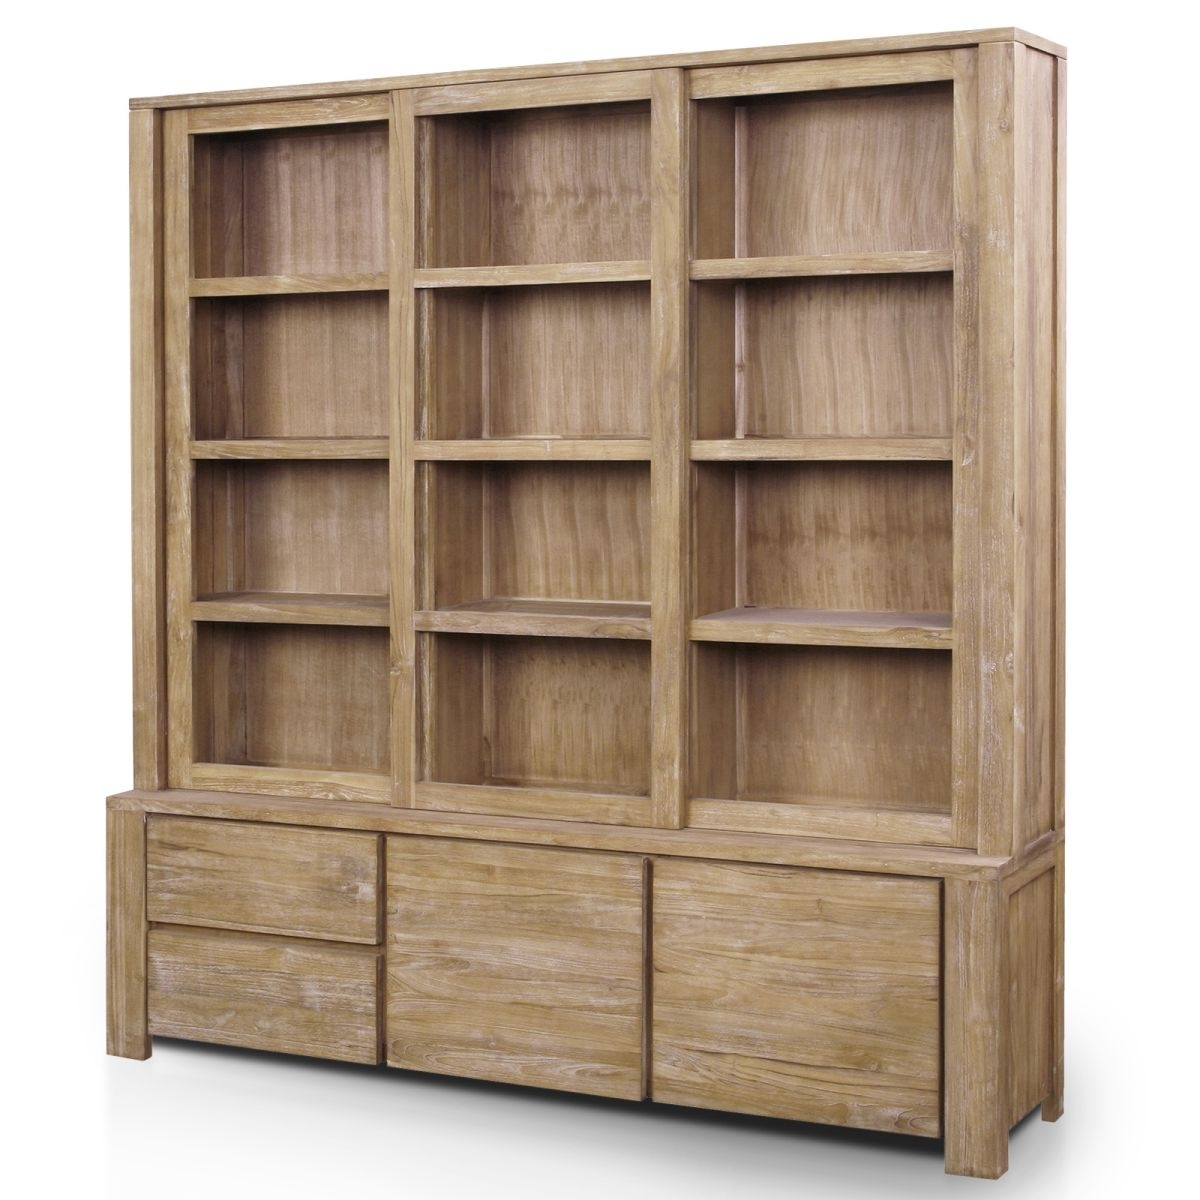 Widely Used Best Bookcase With Doors Large Wood Bookcase With Doors 6 Glass Pertaining To Large Solid Wood Bookcases (View 10 of 15)